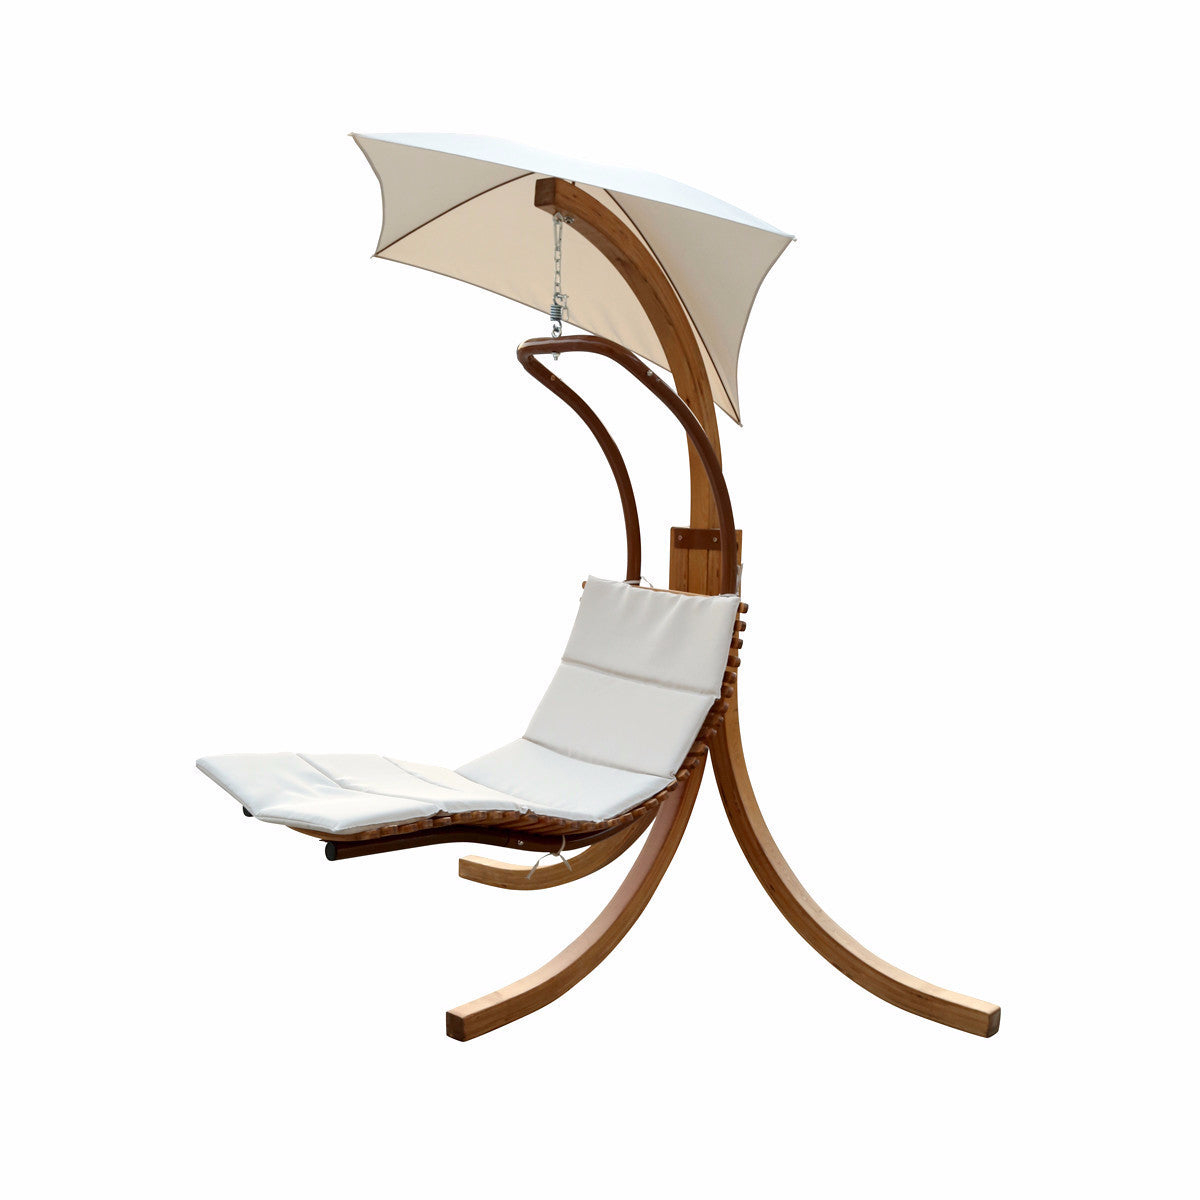 Alison White Outdoor Hanging Chaise Lounger with Stand - Clever and Modern Home and office furniture. Pet Furniture